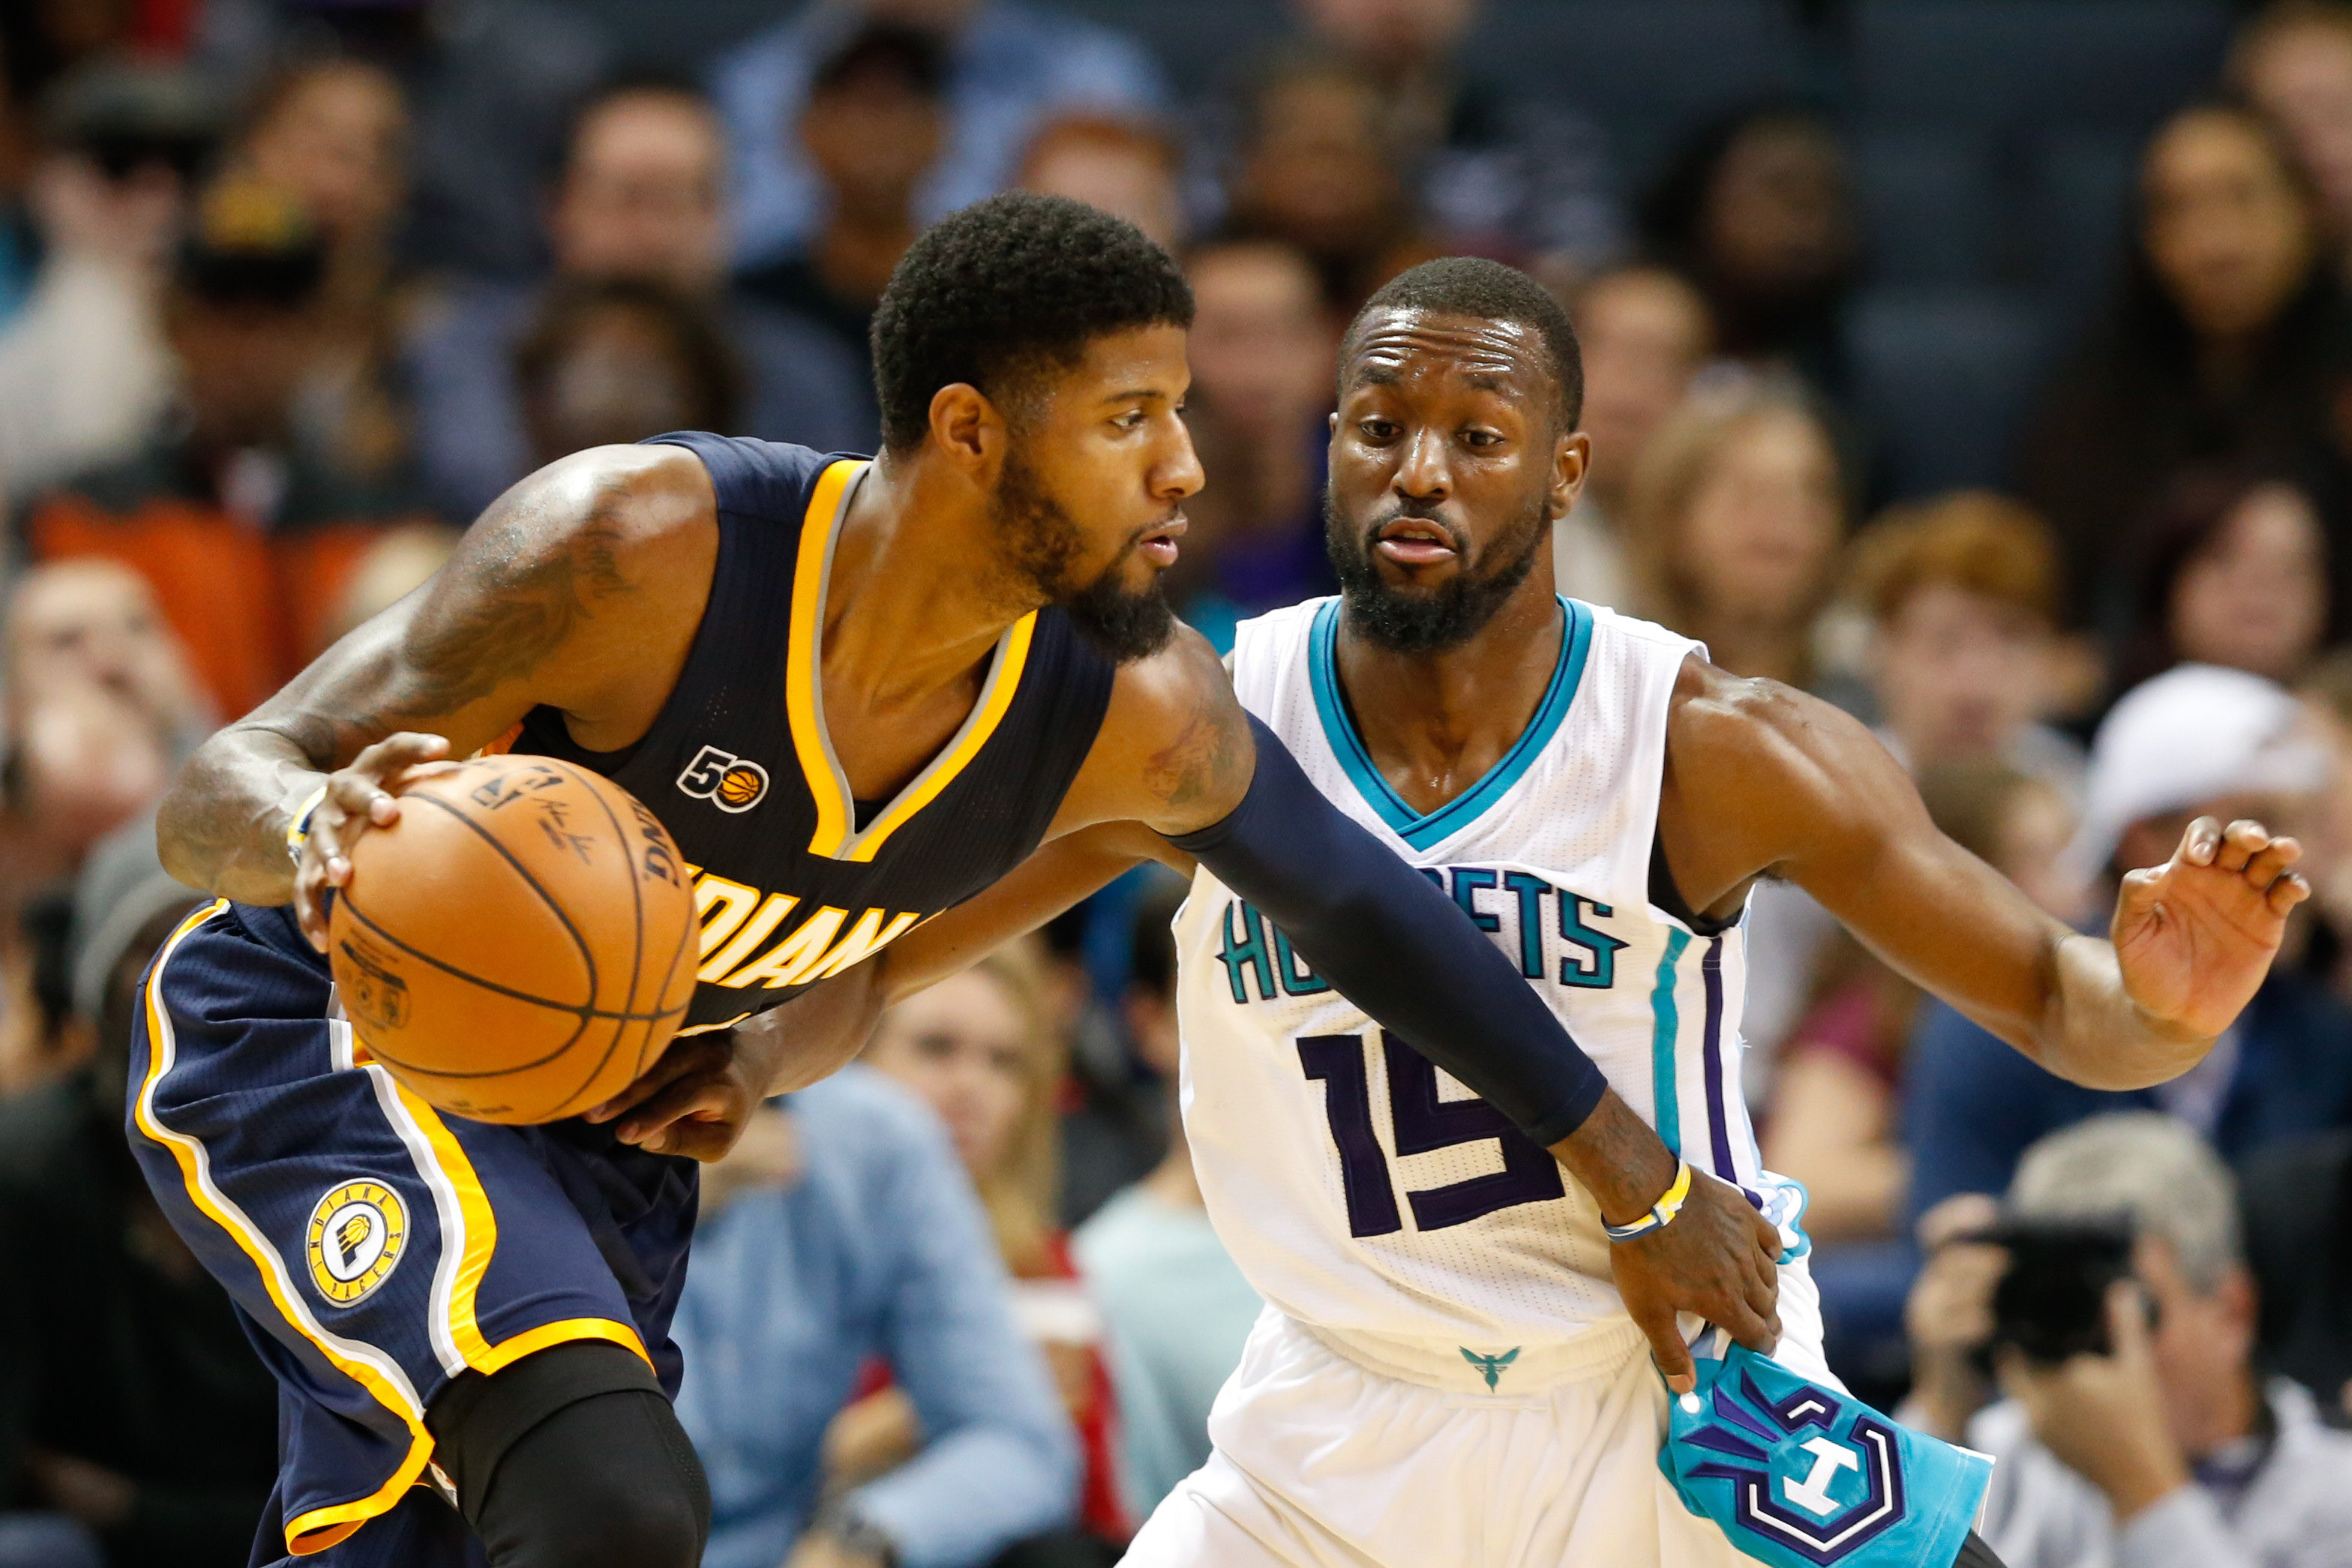 9679169-nba-indiana-pacers-at-charlotte-hornets